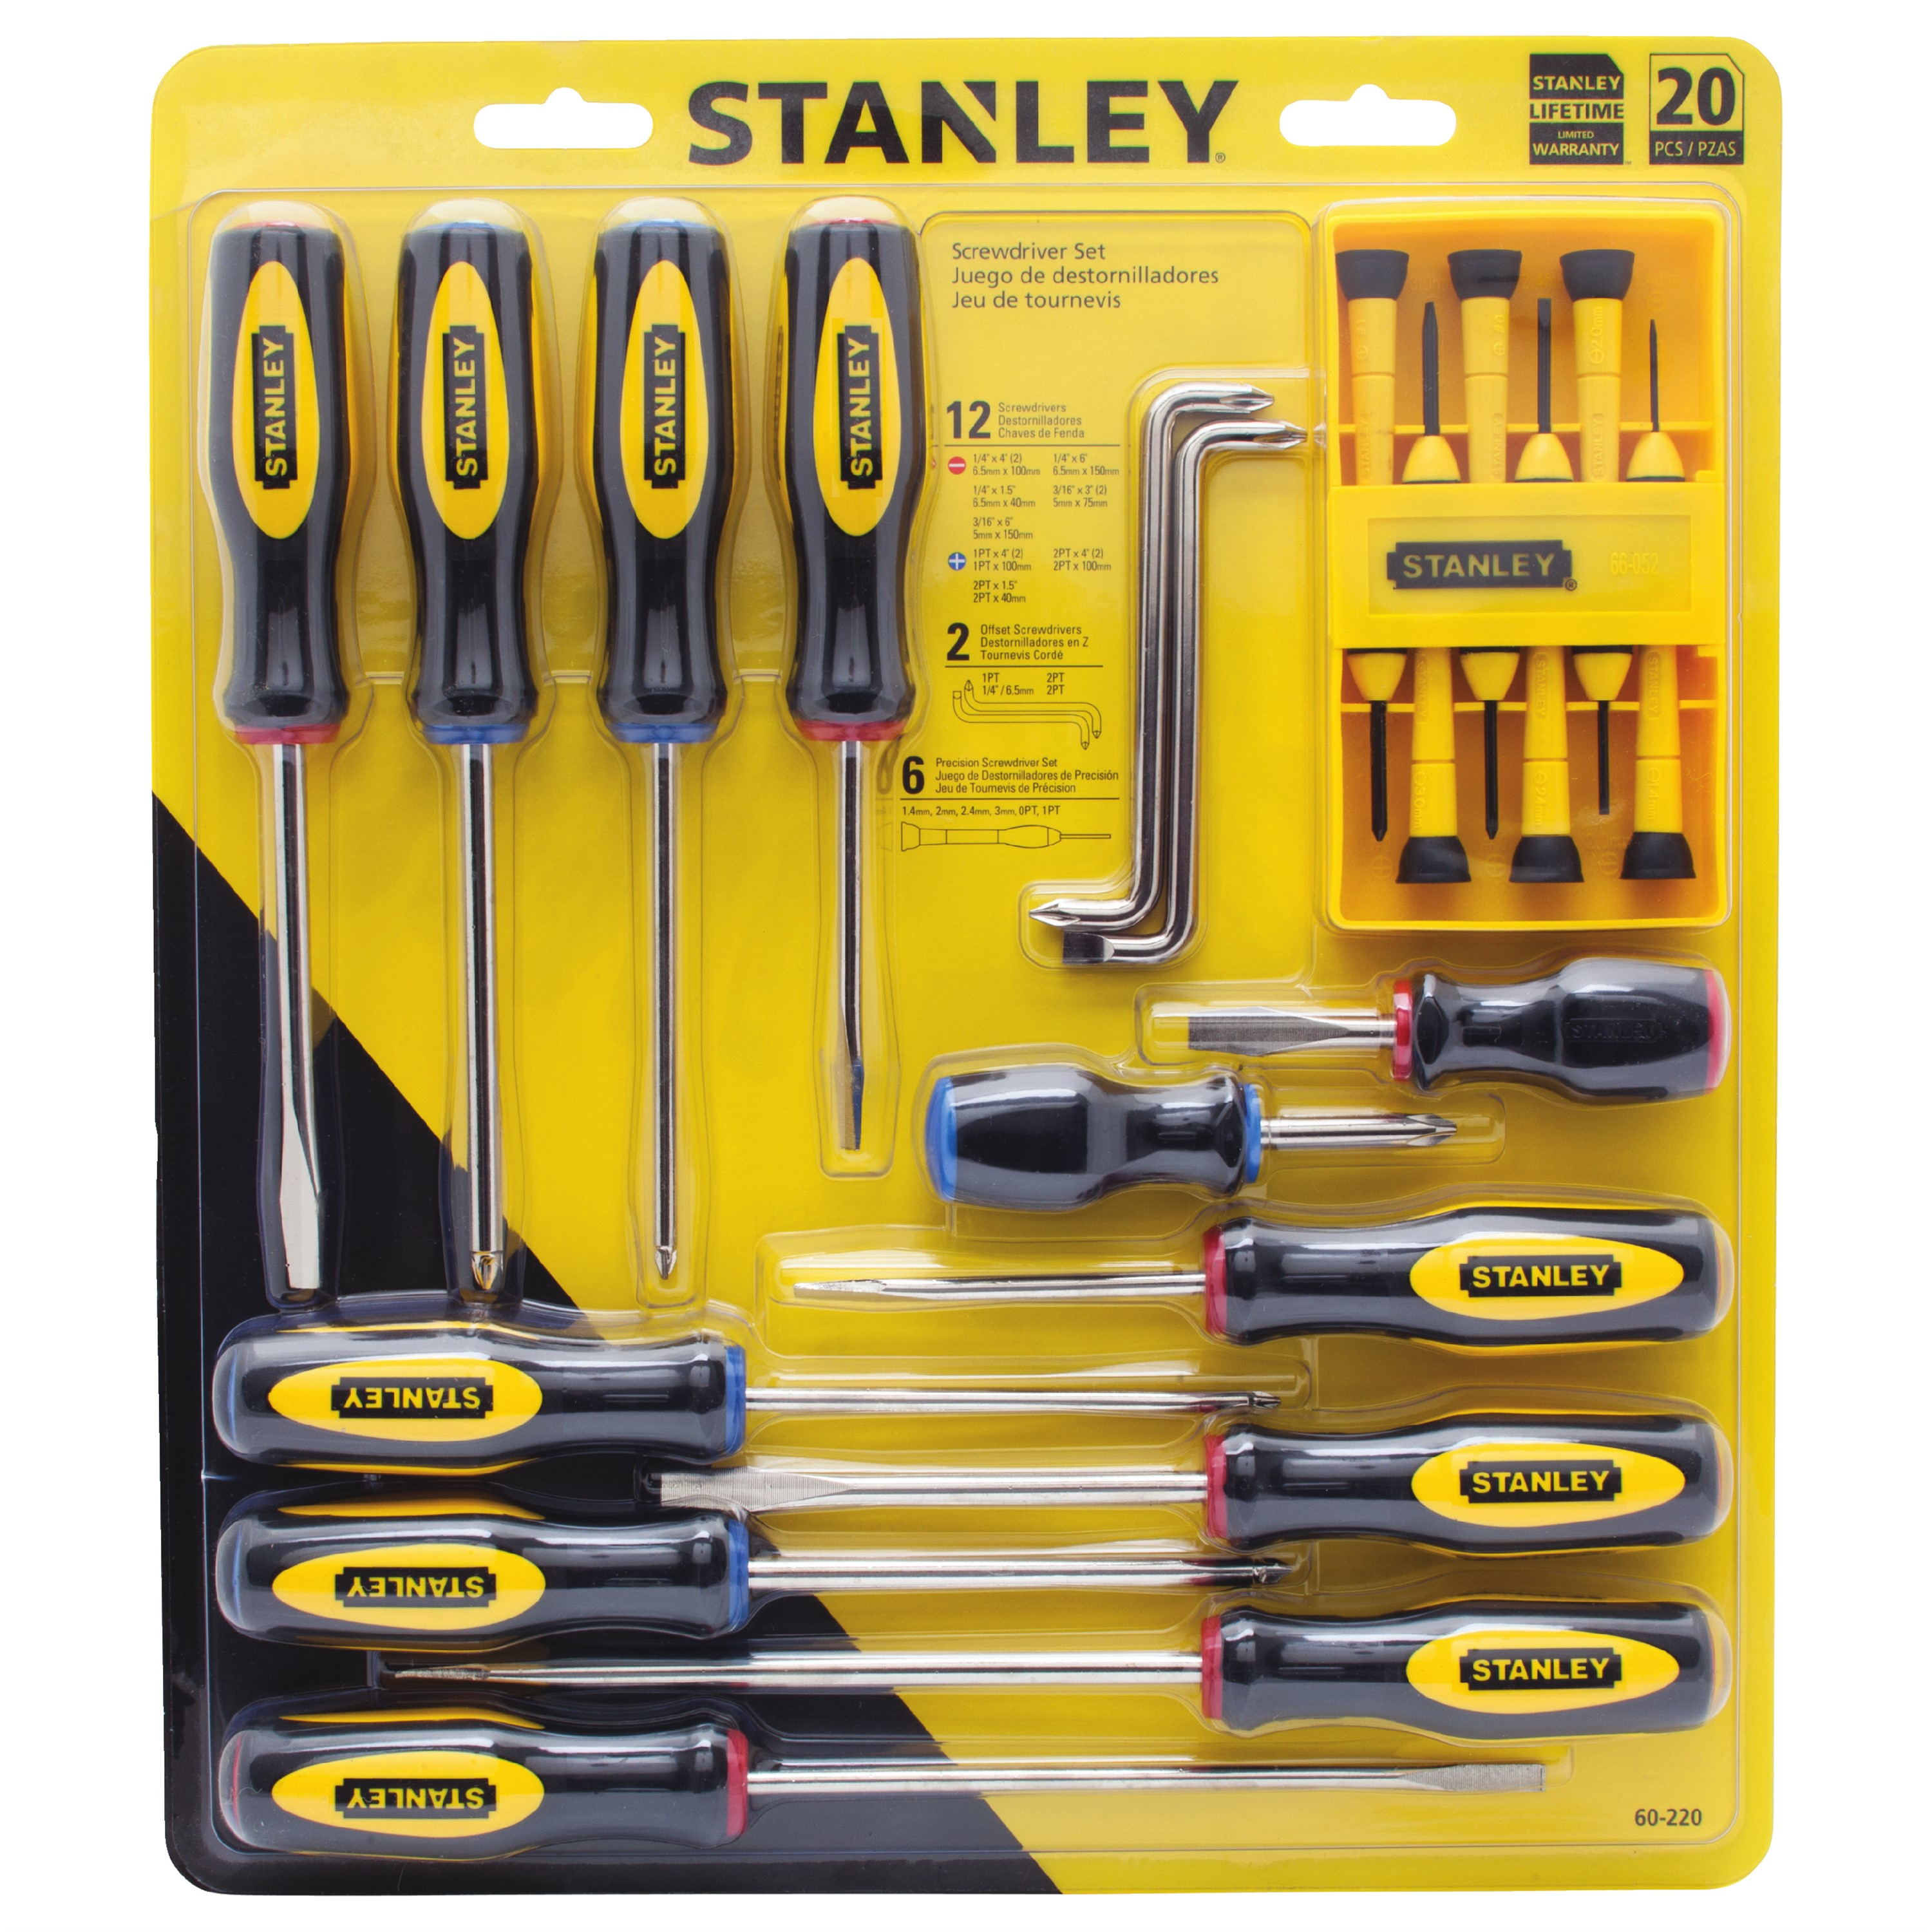 STANLEY® 60-220 20-Piece Screwdriver Set